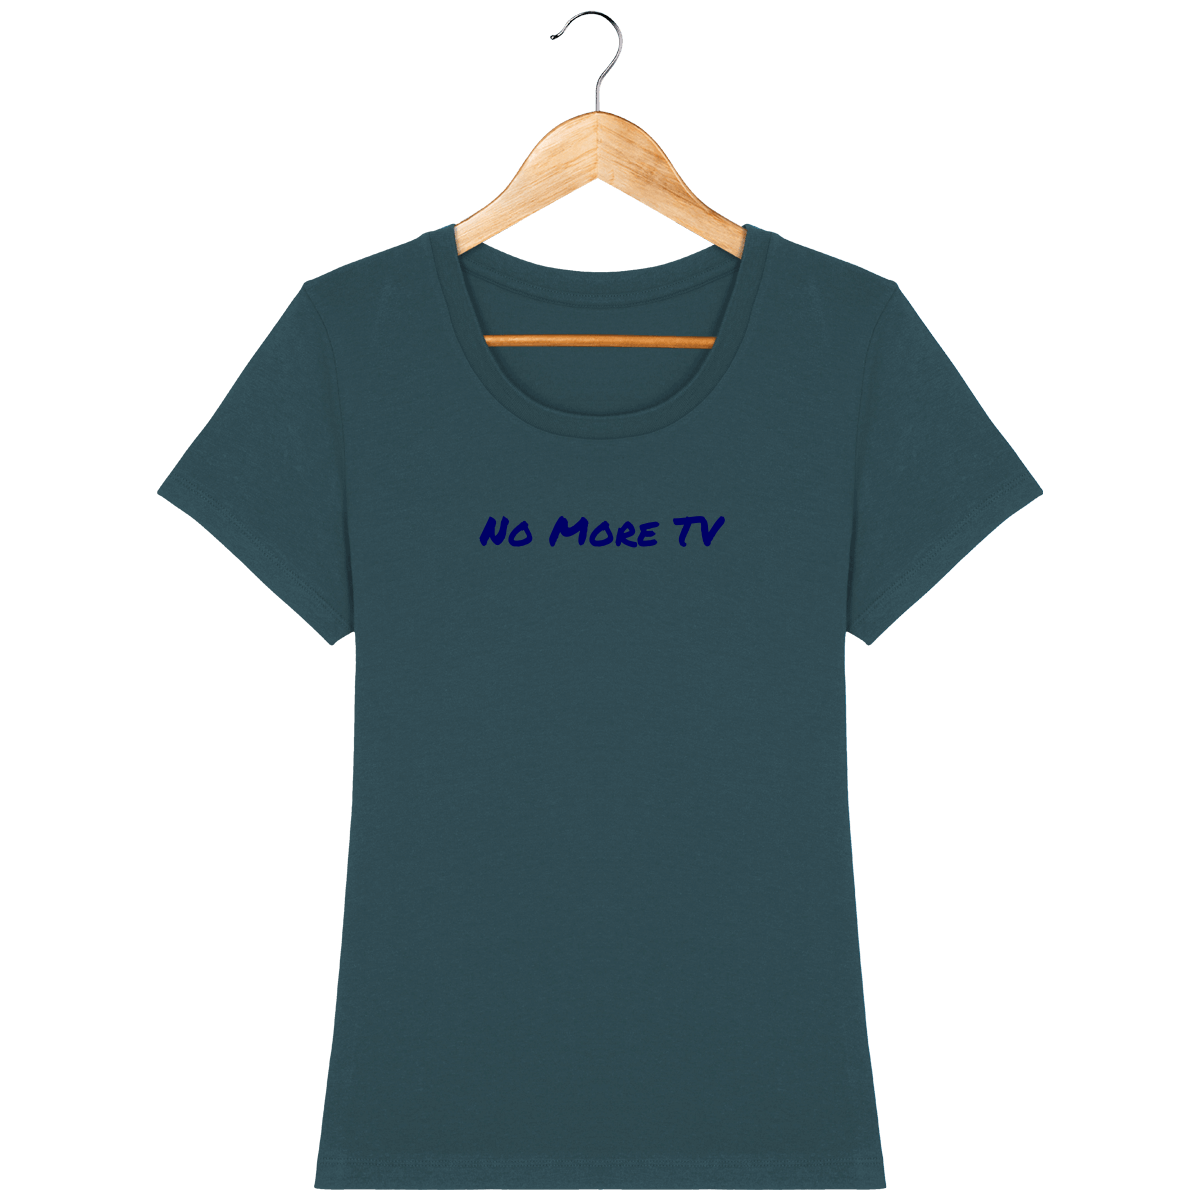 tee-shirt-bio-brode-no-more-tv-white-navy_stargazer_face